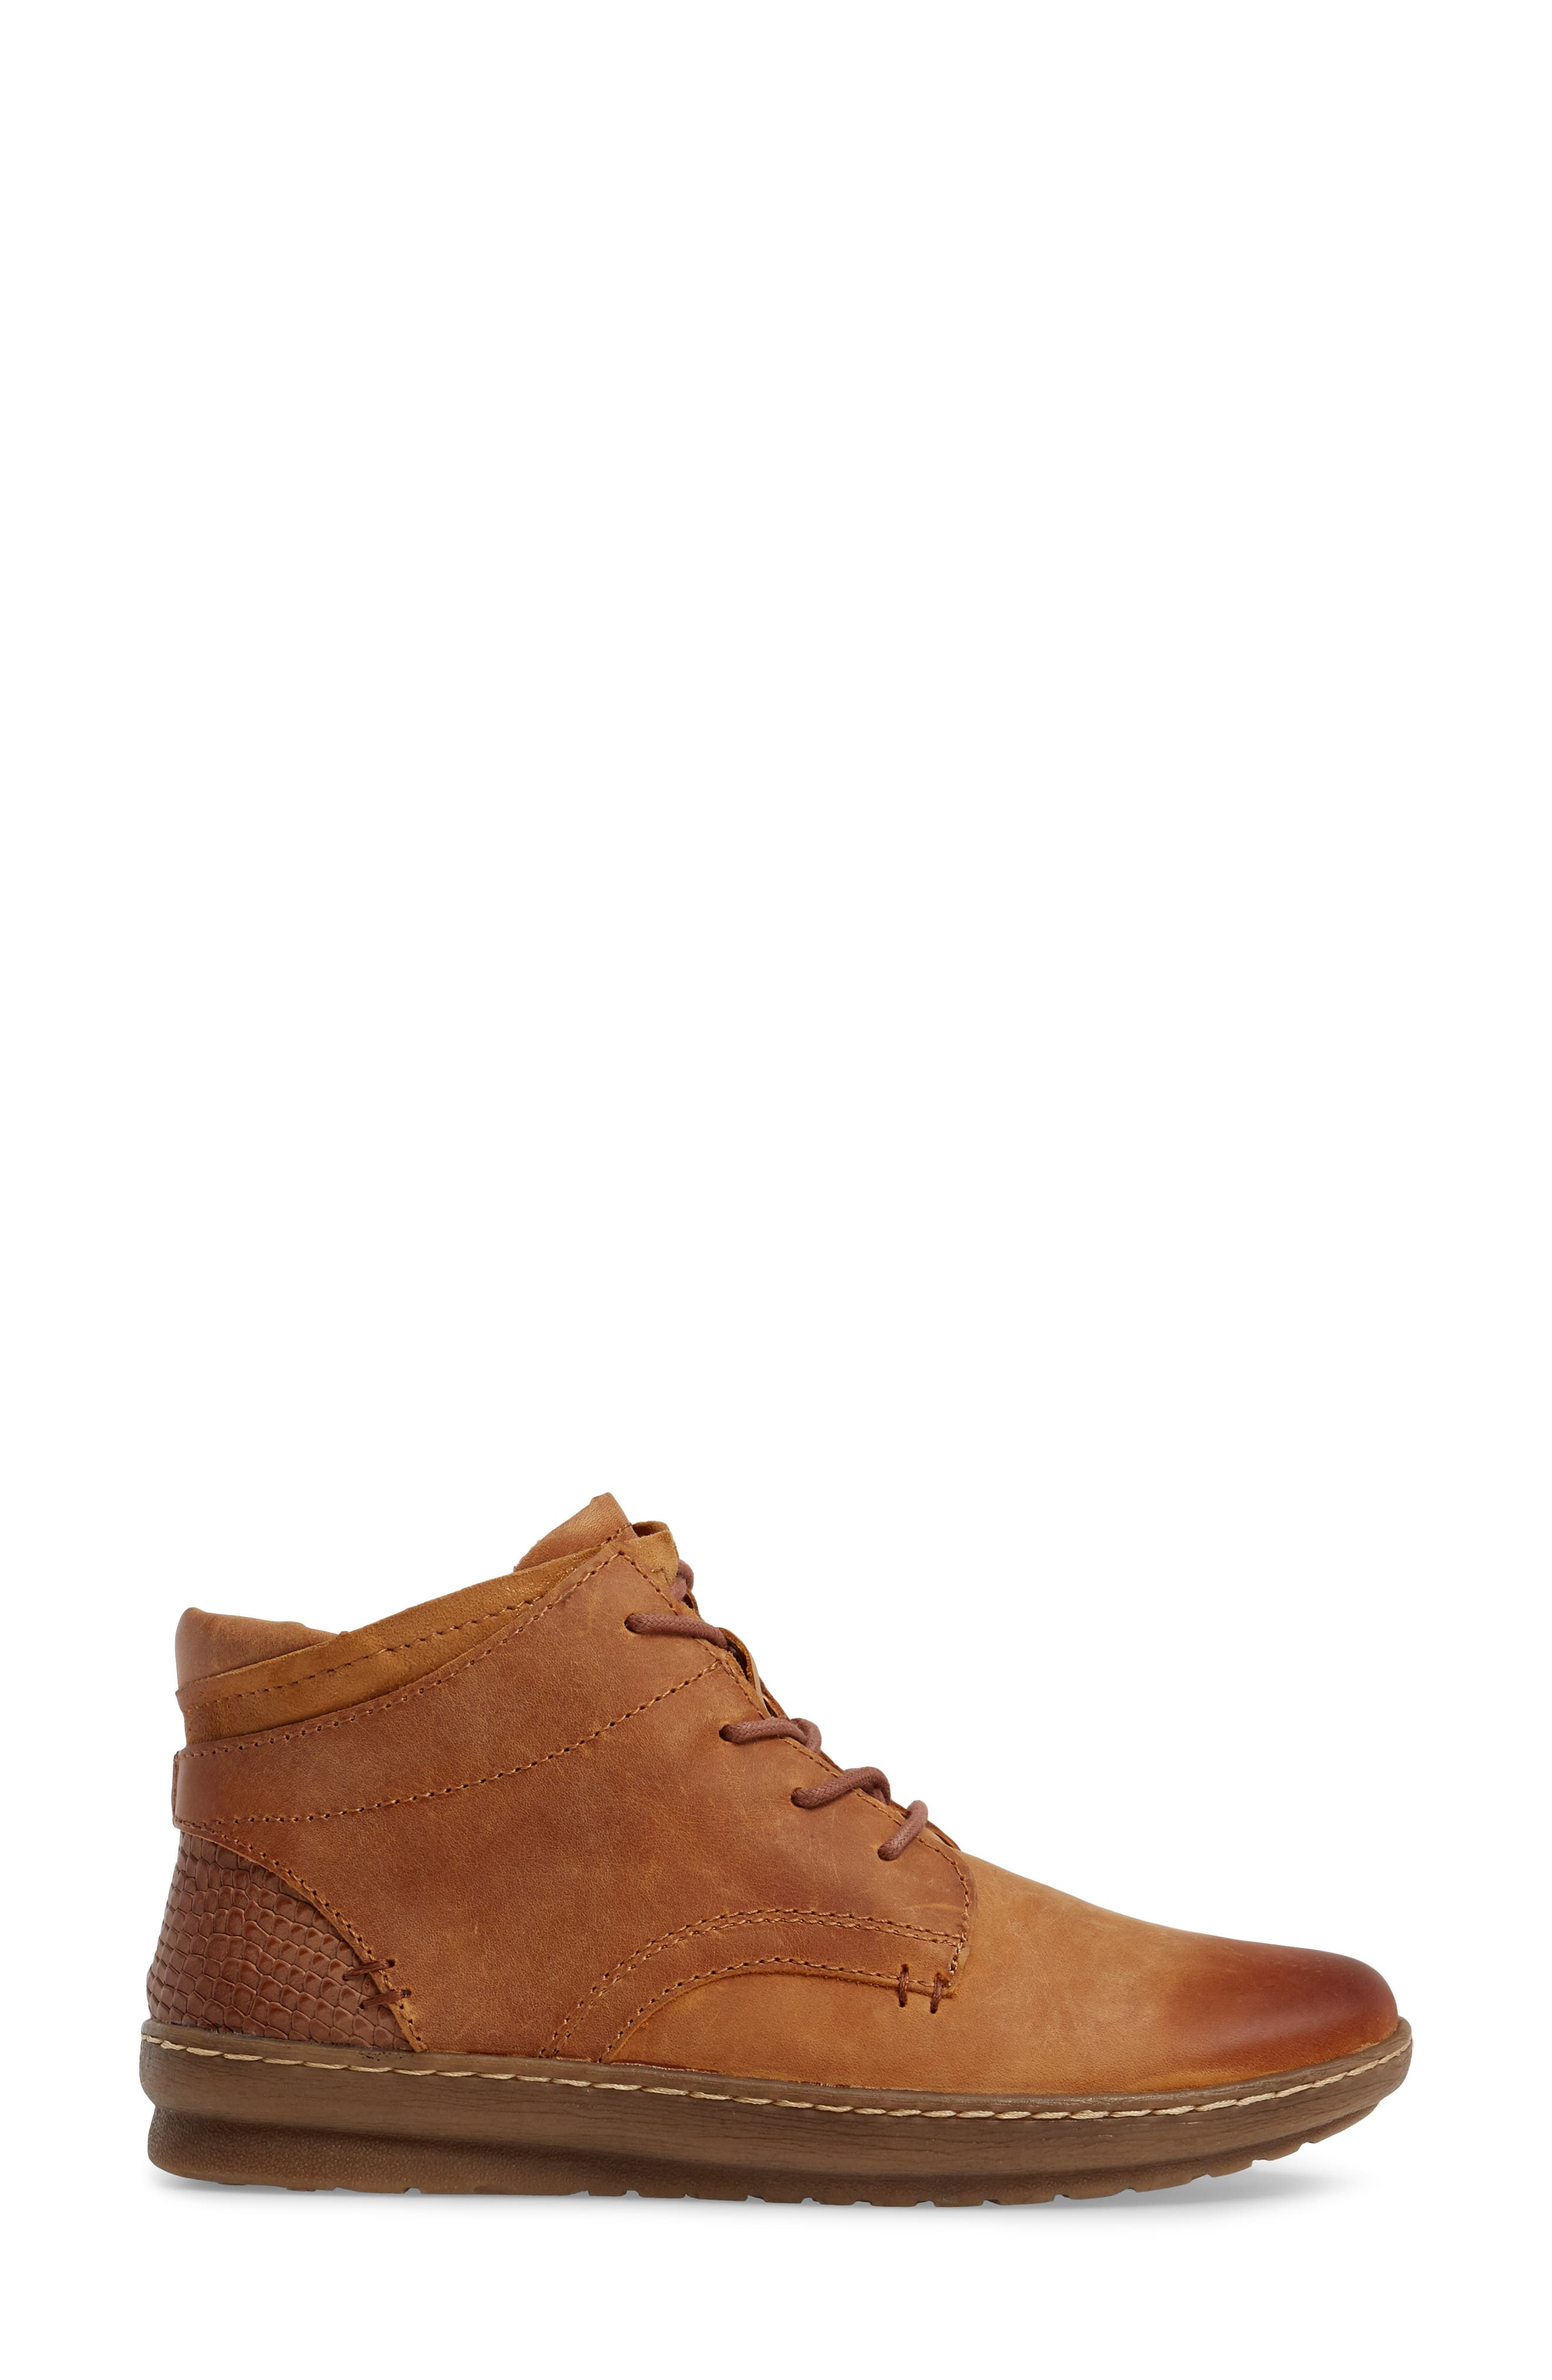 Cascade Boot,                             Alternate thumbnail 3, color,                             Almond Tan Leather